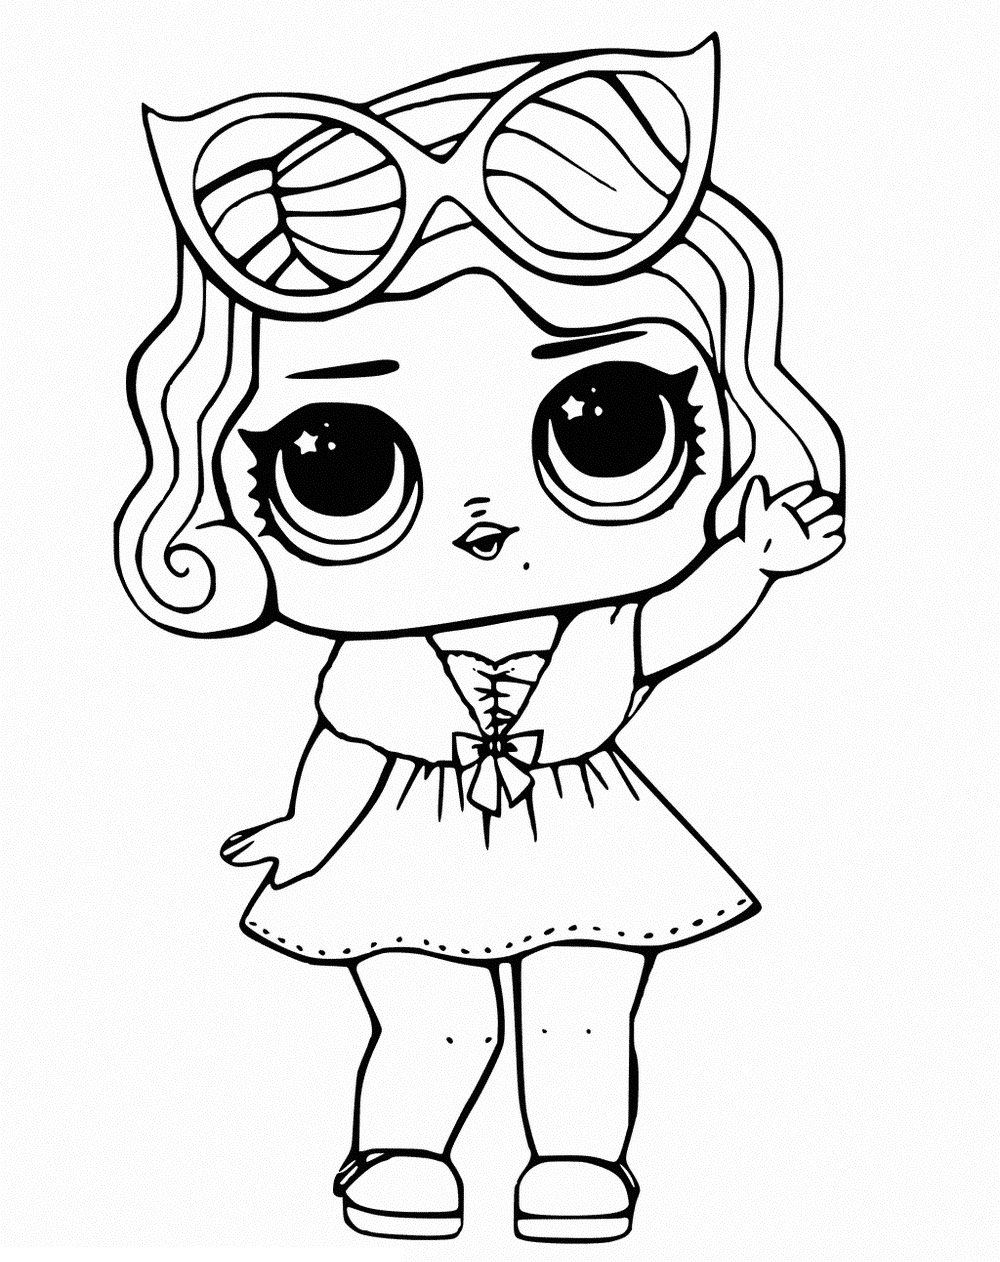 Lol Coloring Pages Lol Surprise Dolls Coloring Pages Print Them For